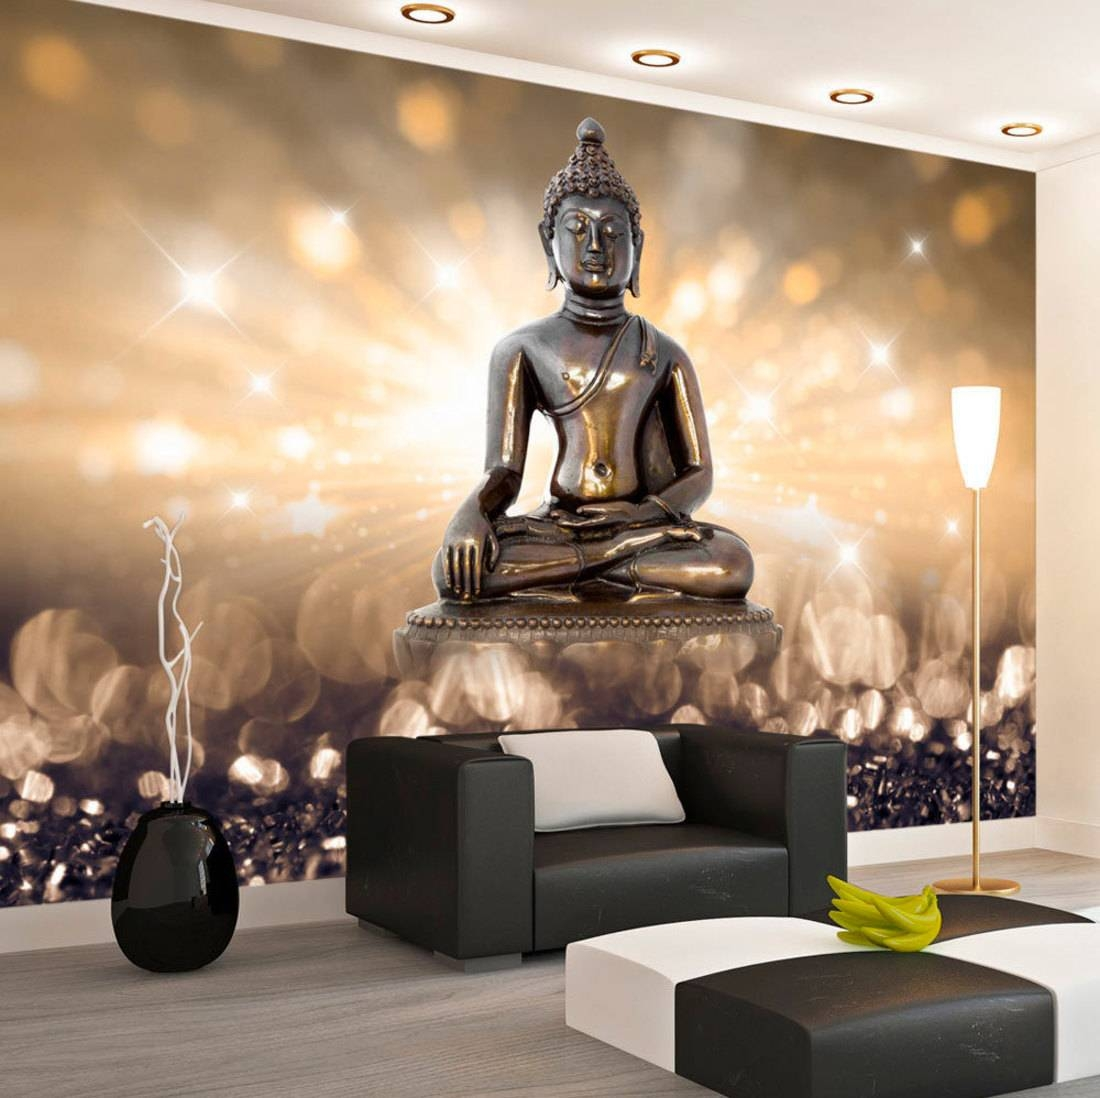 Photo Wallpaper Wall Murals Non Woven 3D Modern Art Buddha For Current 3D Buddha Wall Art (View 19 of 20)